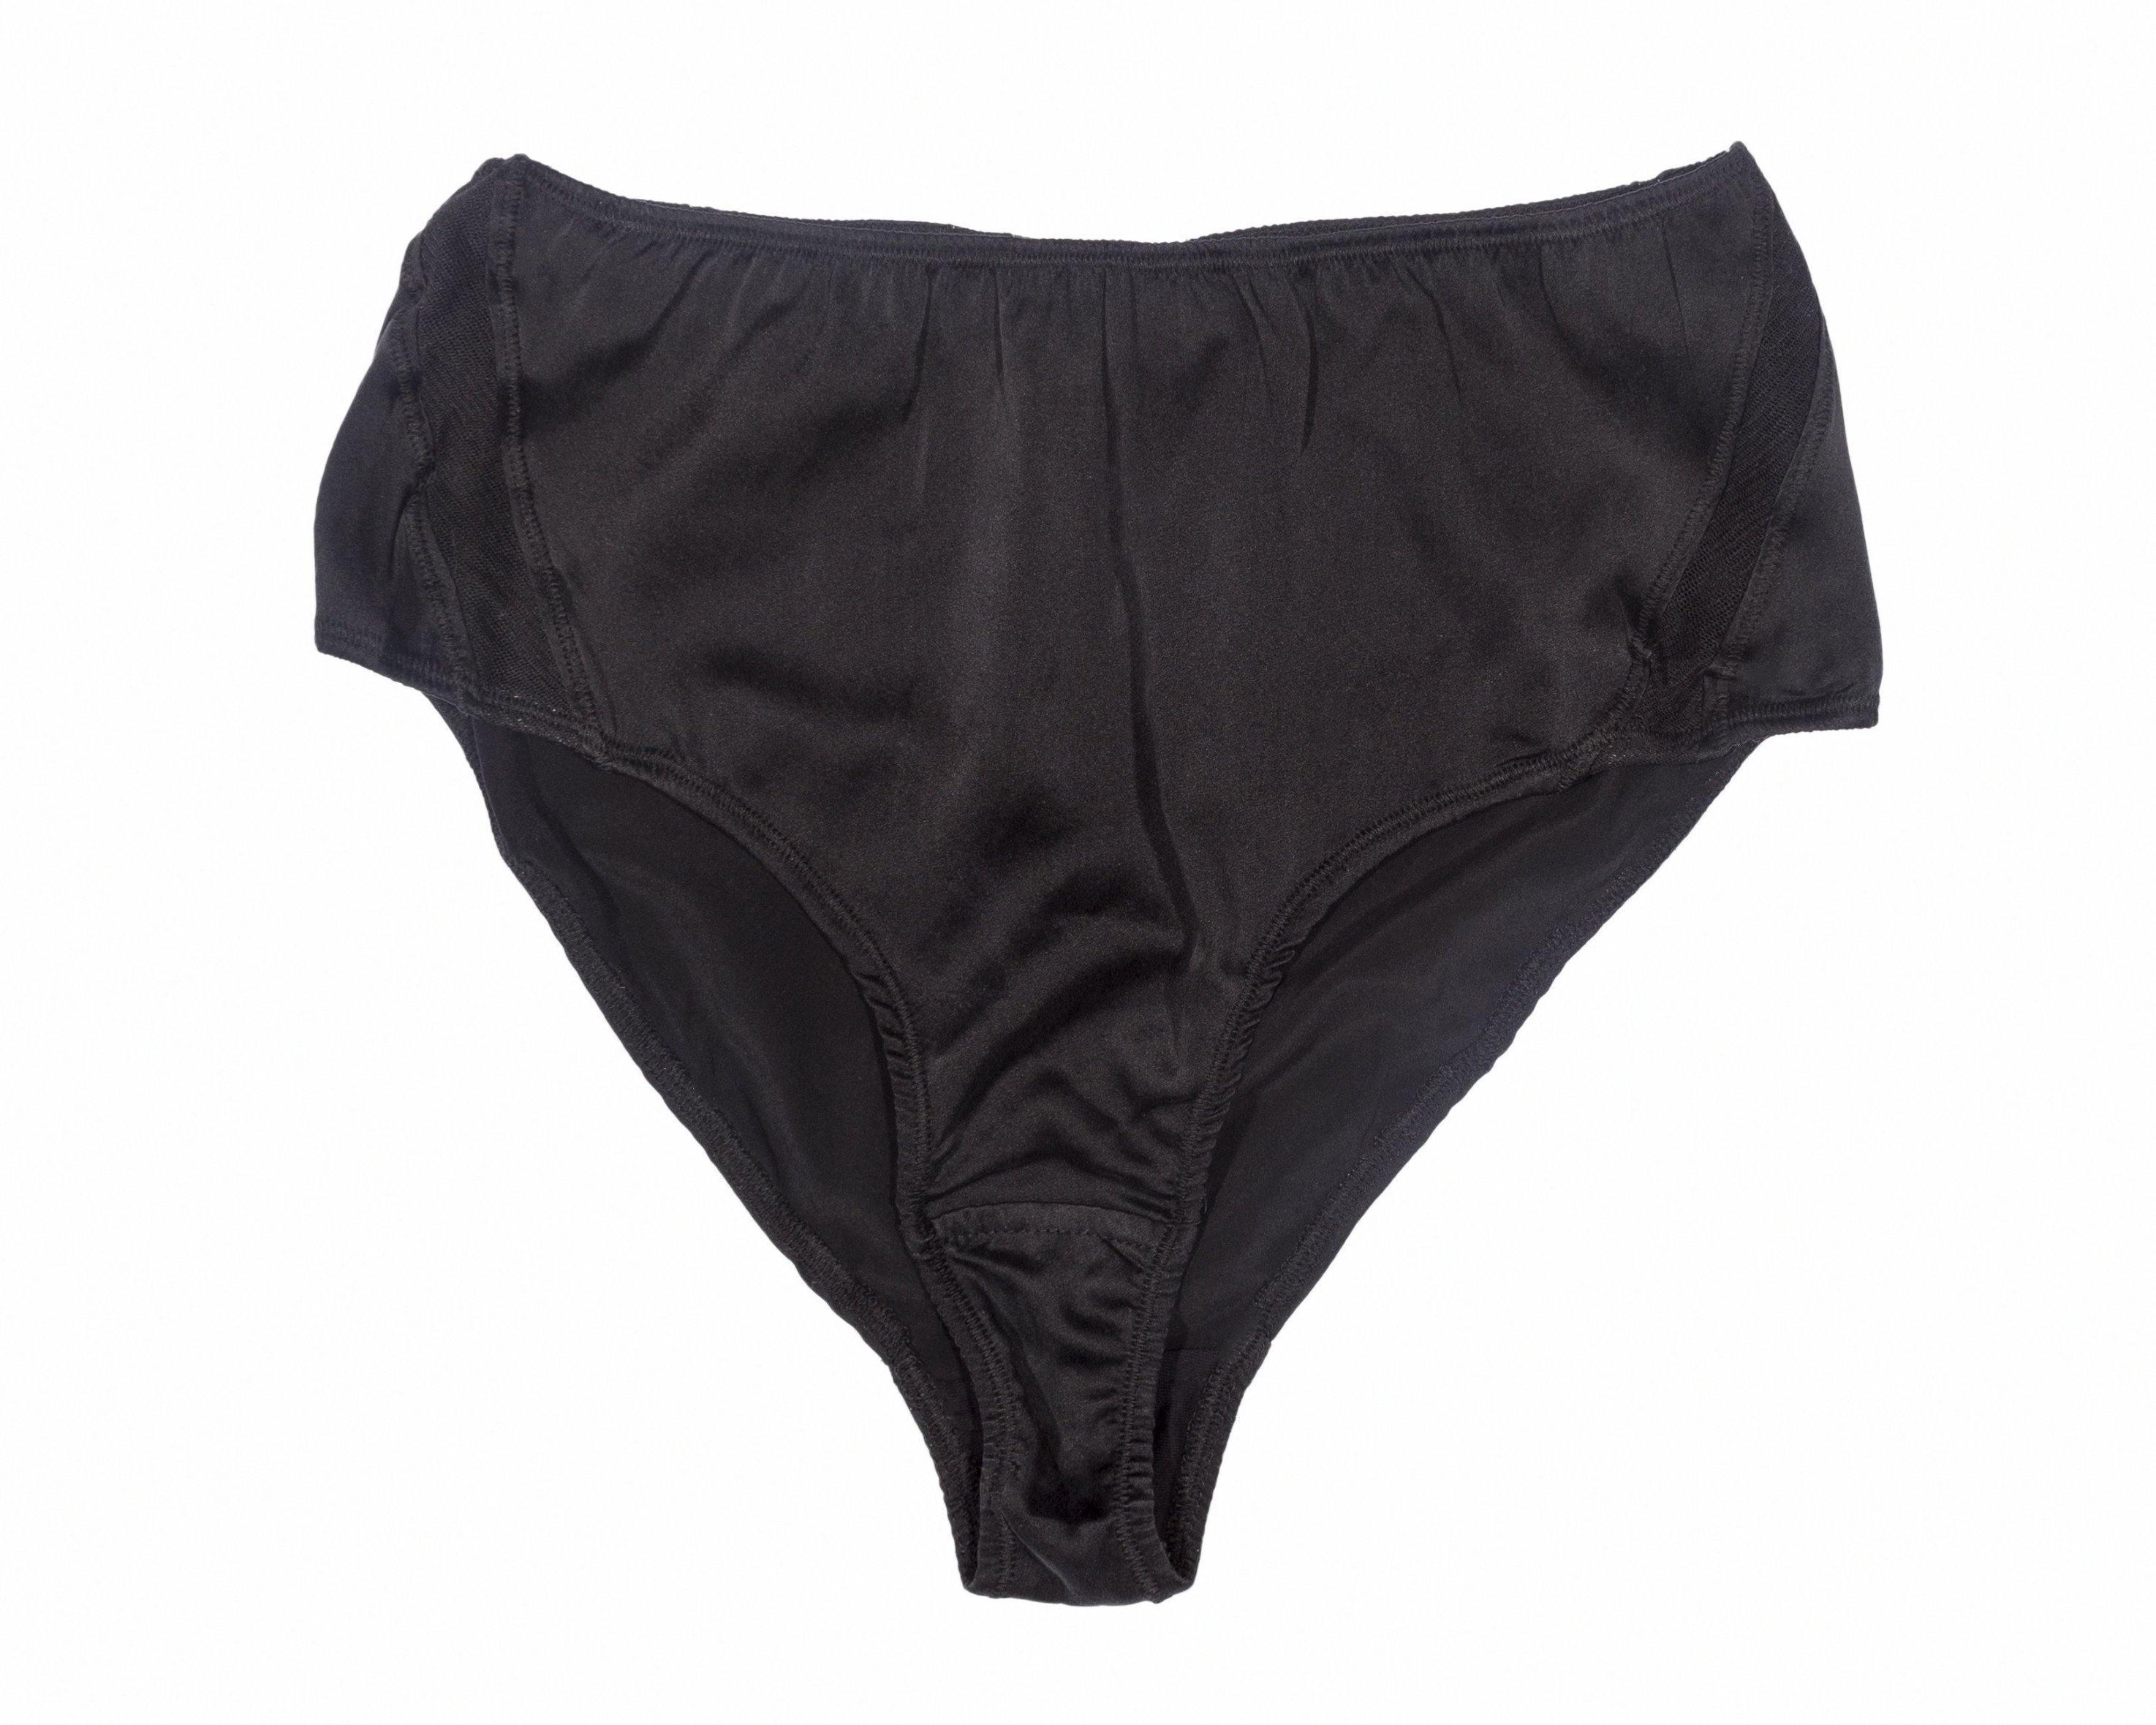 BLAM High-Waist Organic Silk Brief in Pitch Black